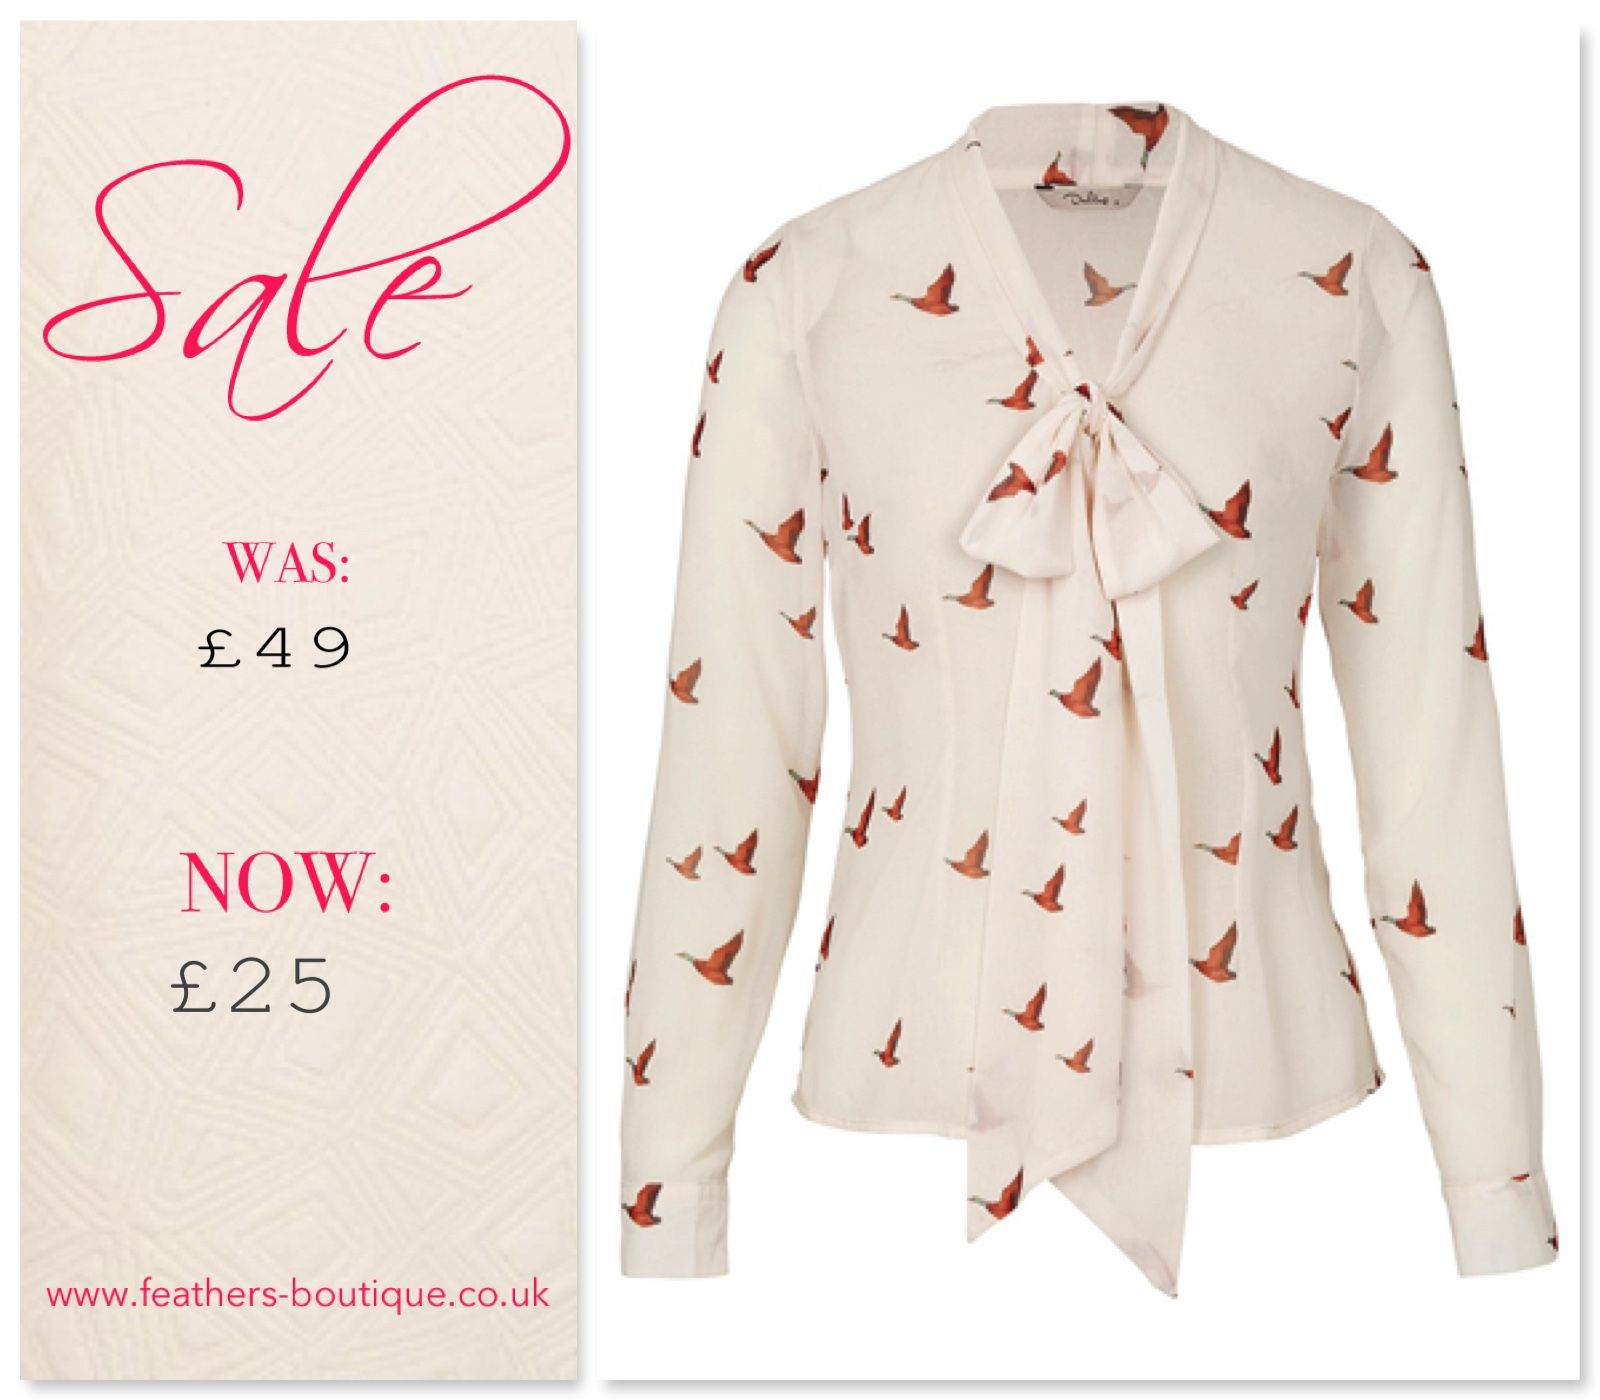 This ladylike Delphine Printed Blouse by Darling features pearl buttons and pussybow collar. The flying bird print adds a tongue in cheek twist  #sale #feathersboutique #liverpool #love #fashion #fashionista #style #stylist #clothes #clothing #ootd #fbloggers #bbloggers #bloggers #blogging #blog #picoftheday #photooftheday #outfit #darling #top #shirt #blouse